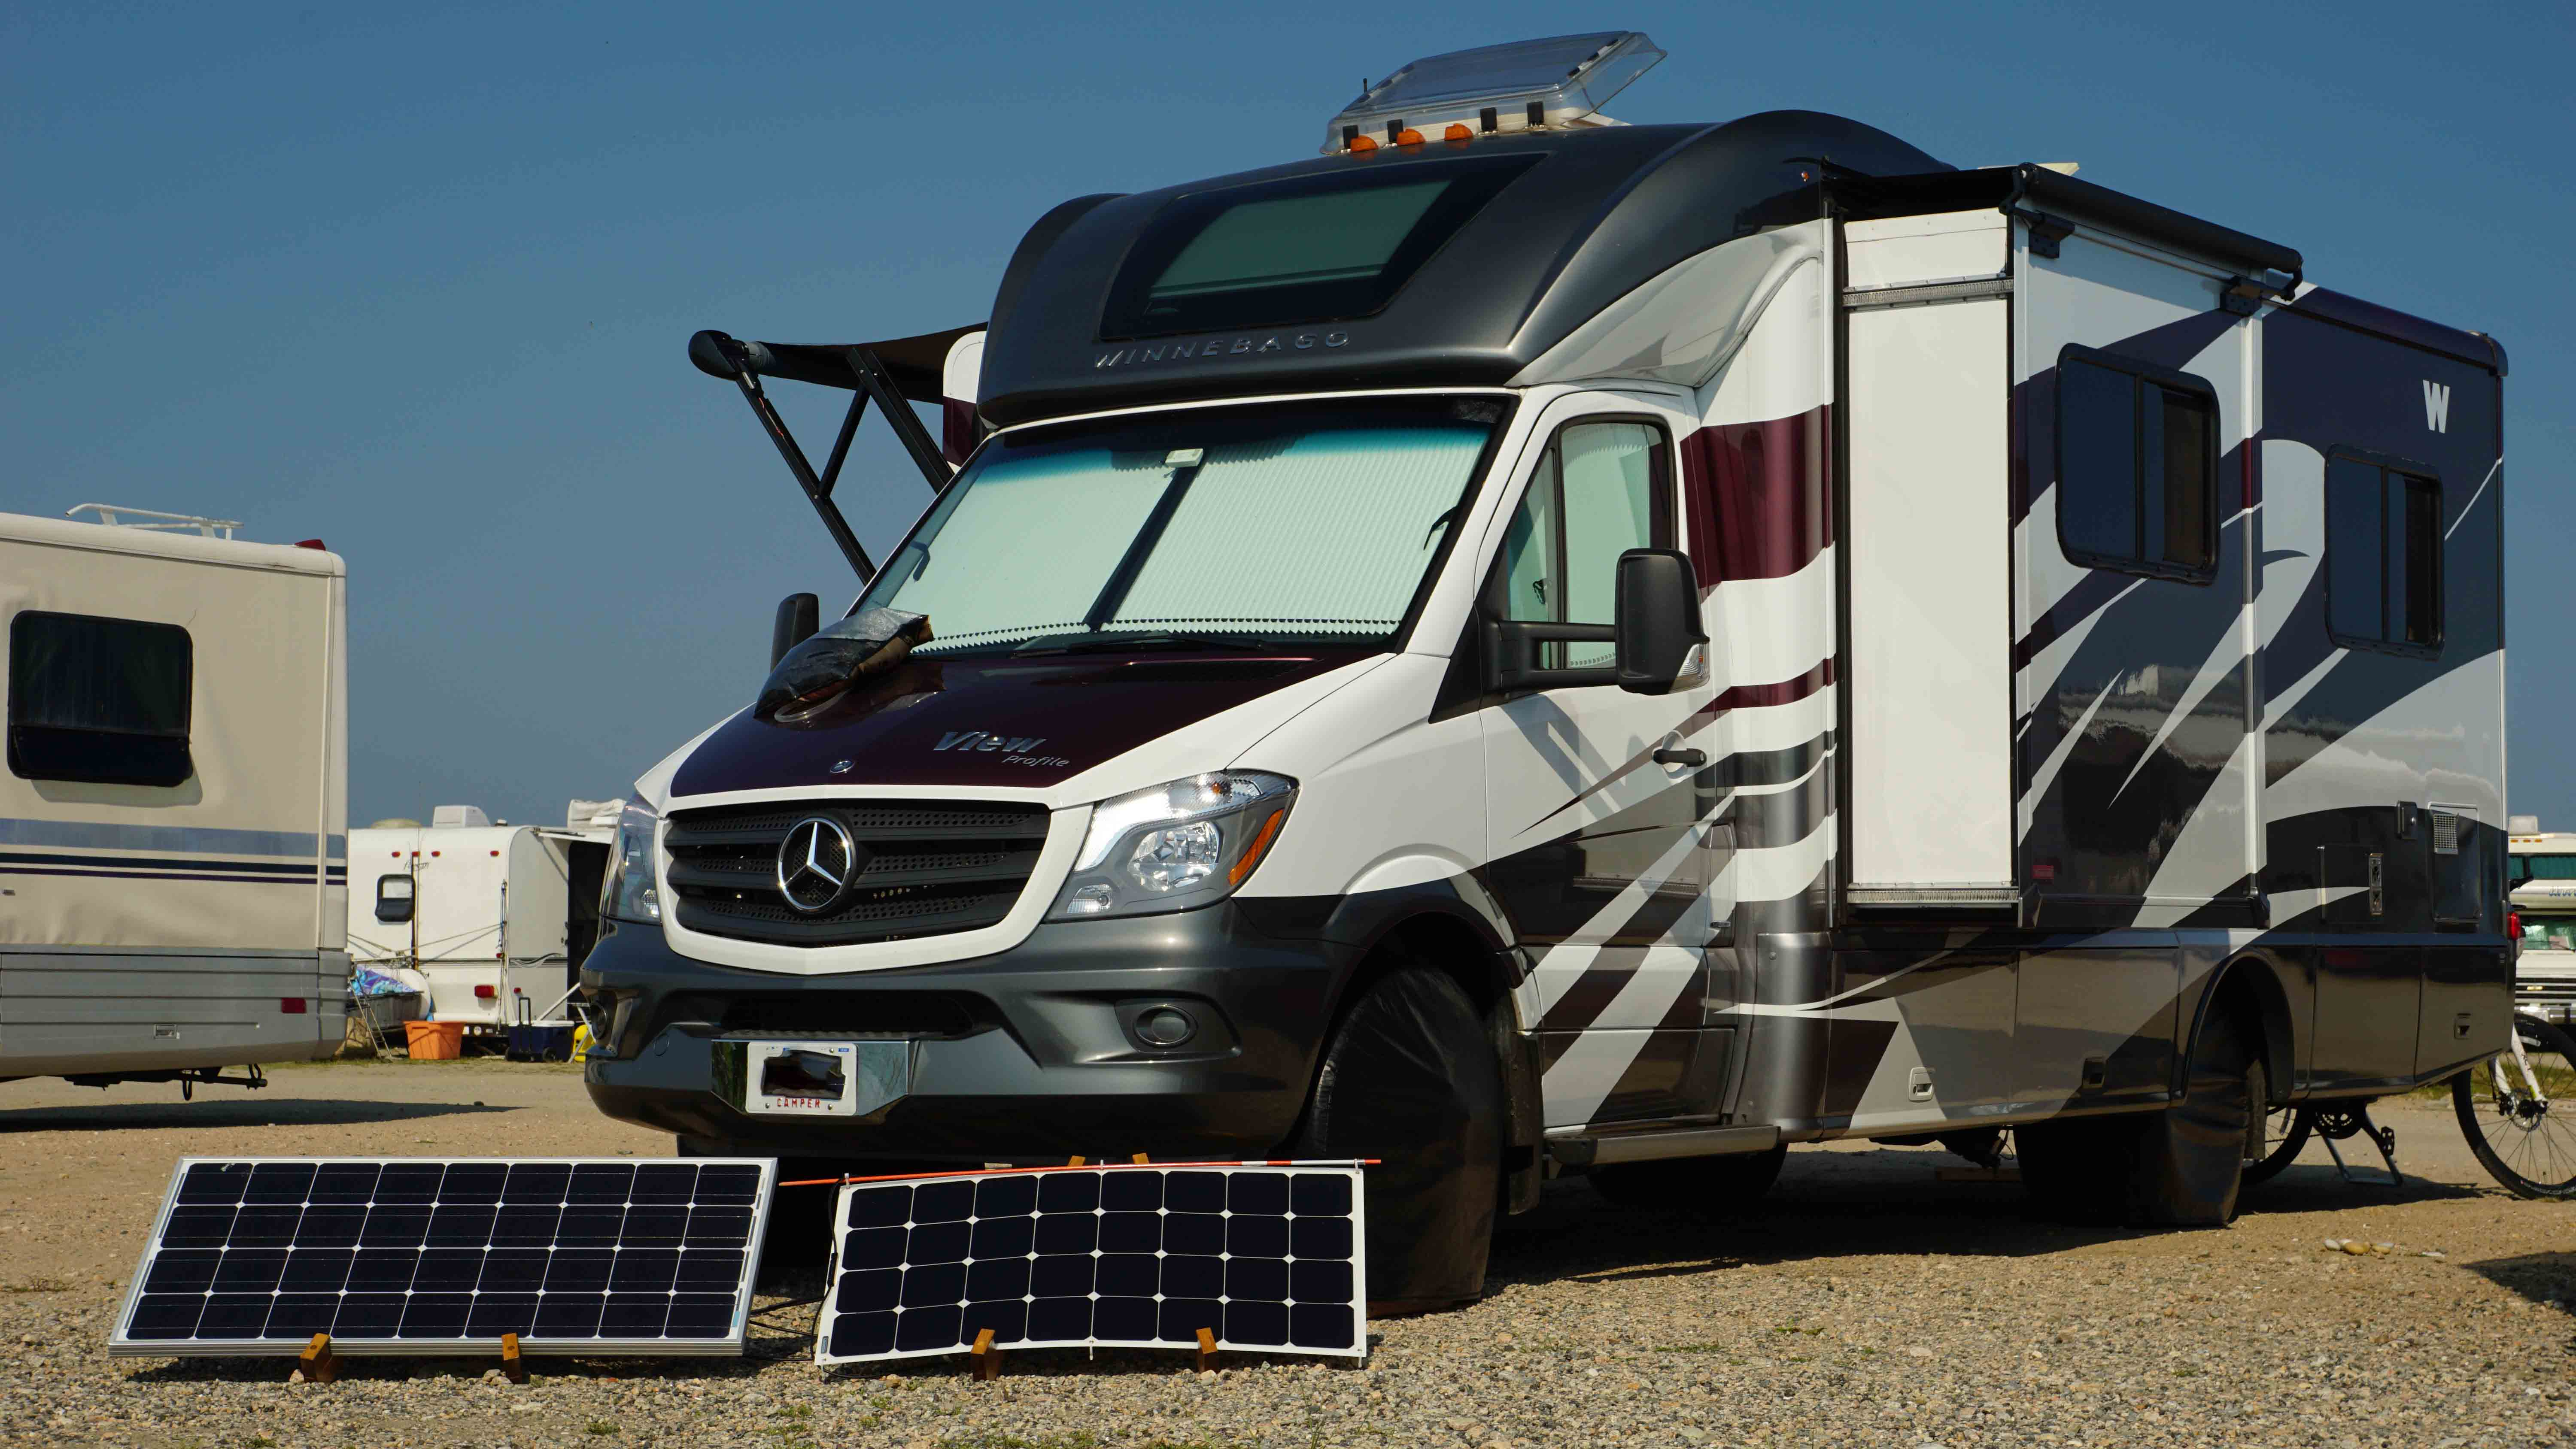 How to install a solar system on an rv - I Just Got Back From 8 Days Of Dry Camping And Got Lots Of Comments And Questions From People About My Rv Solar Setup I Installed The System Last Year And